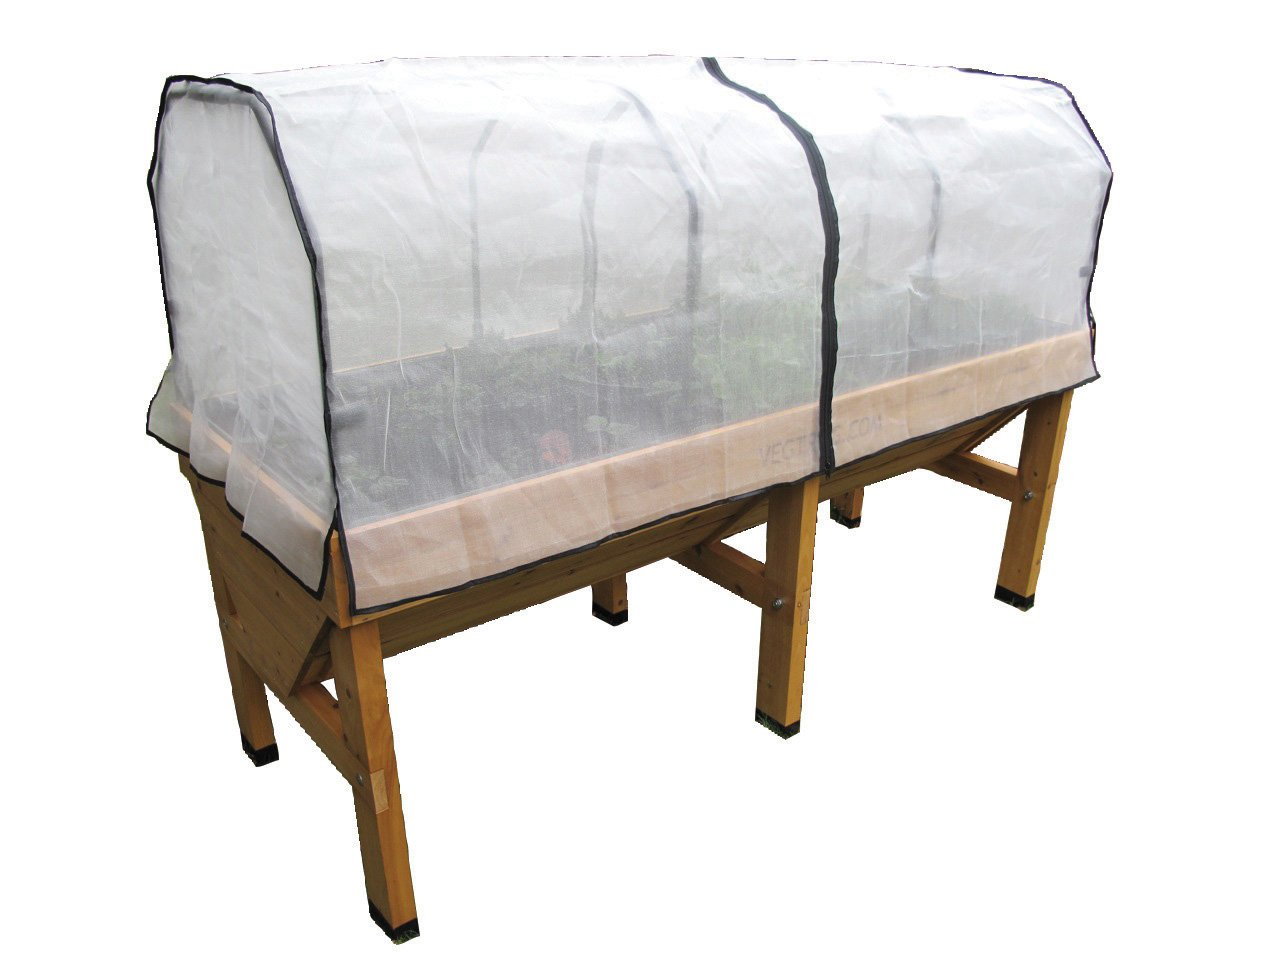 Vegtrug MGMMC1147 USA Medium Greenhouse Micromesh Cover